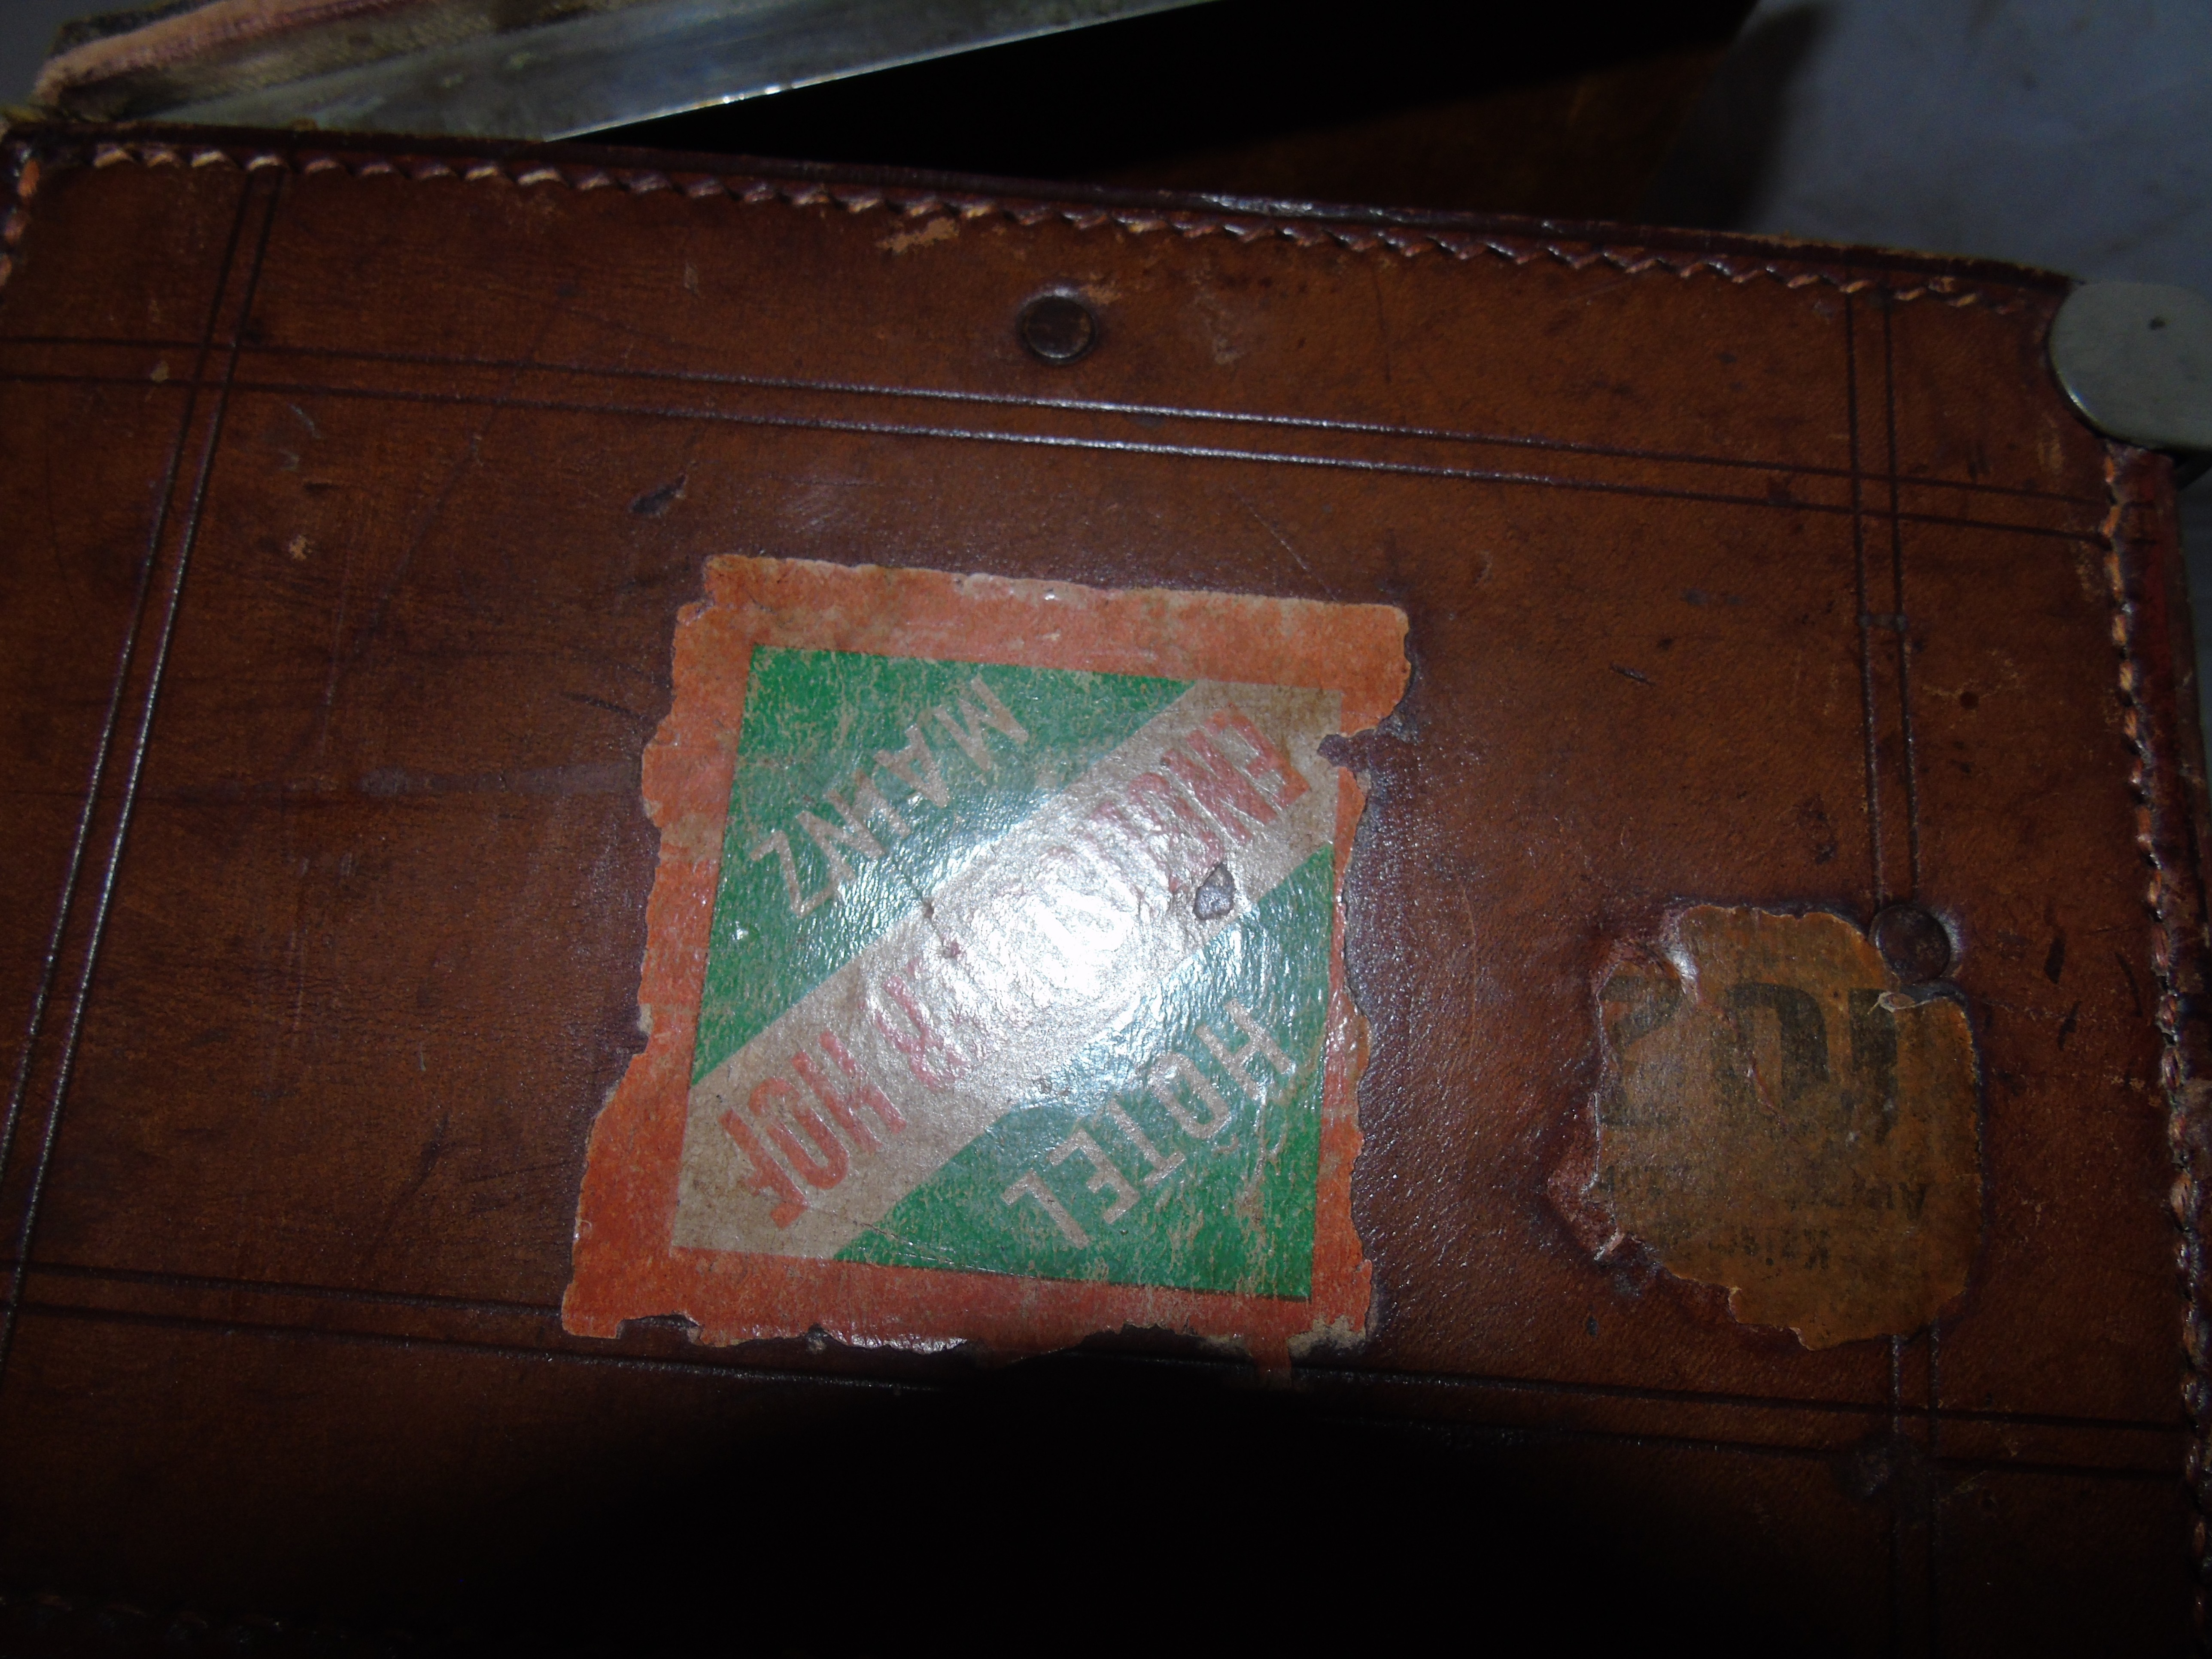 Lot 32 - VINTAGE LEATHER DOCUMENT CASE WITH NICKLE PLATED FITTINGS EST [£20-£40]